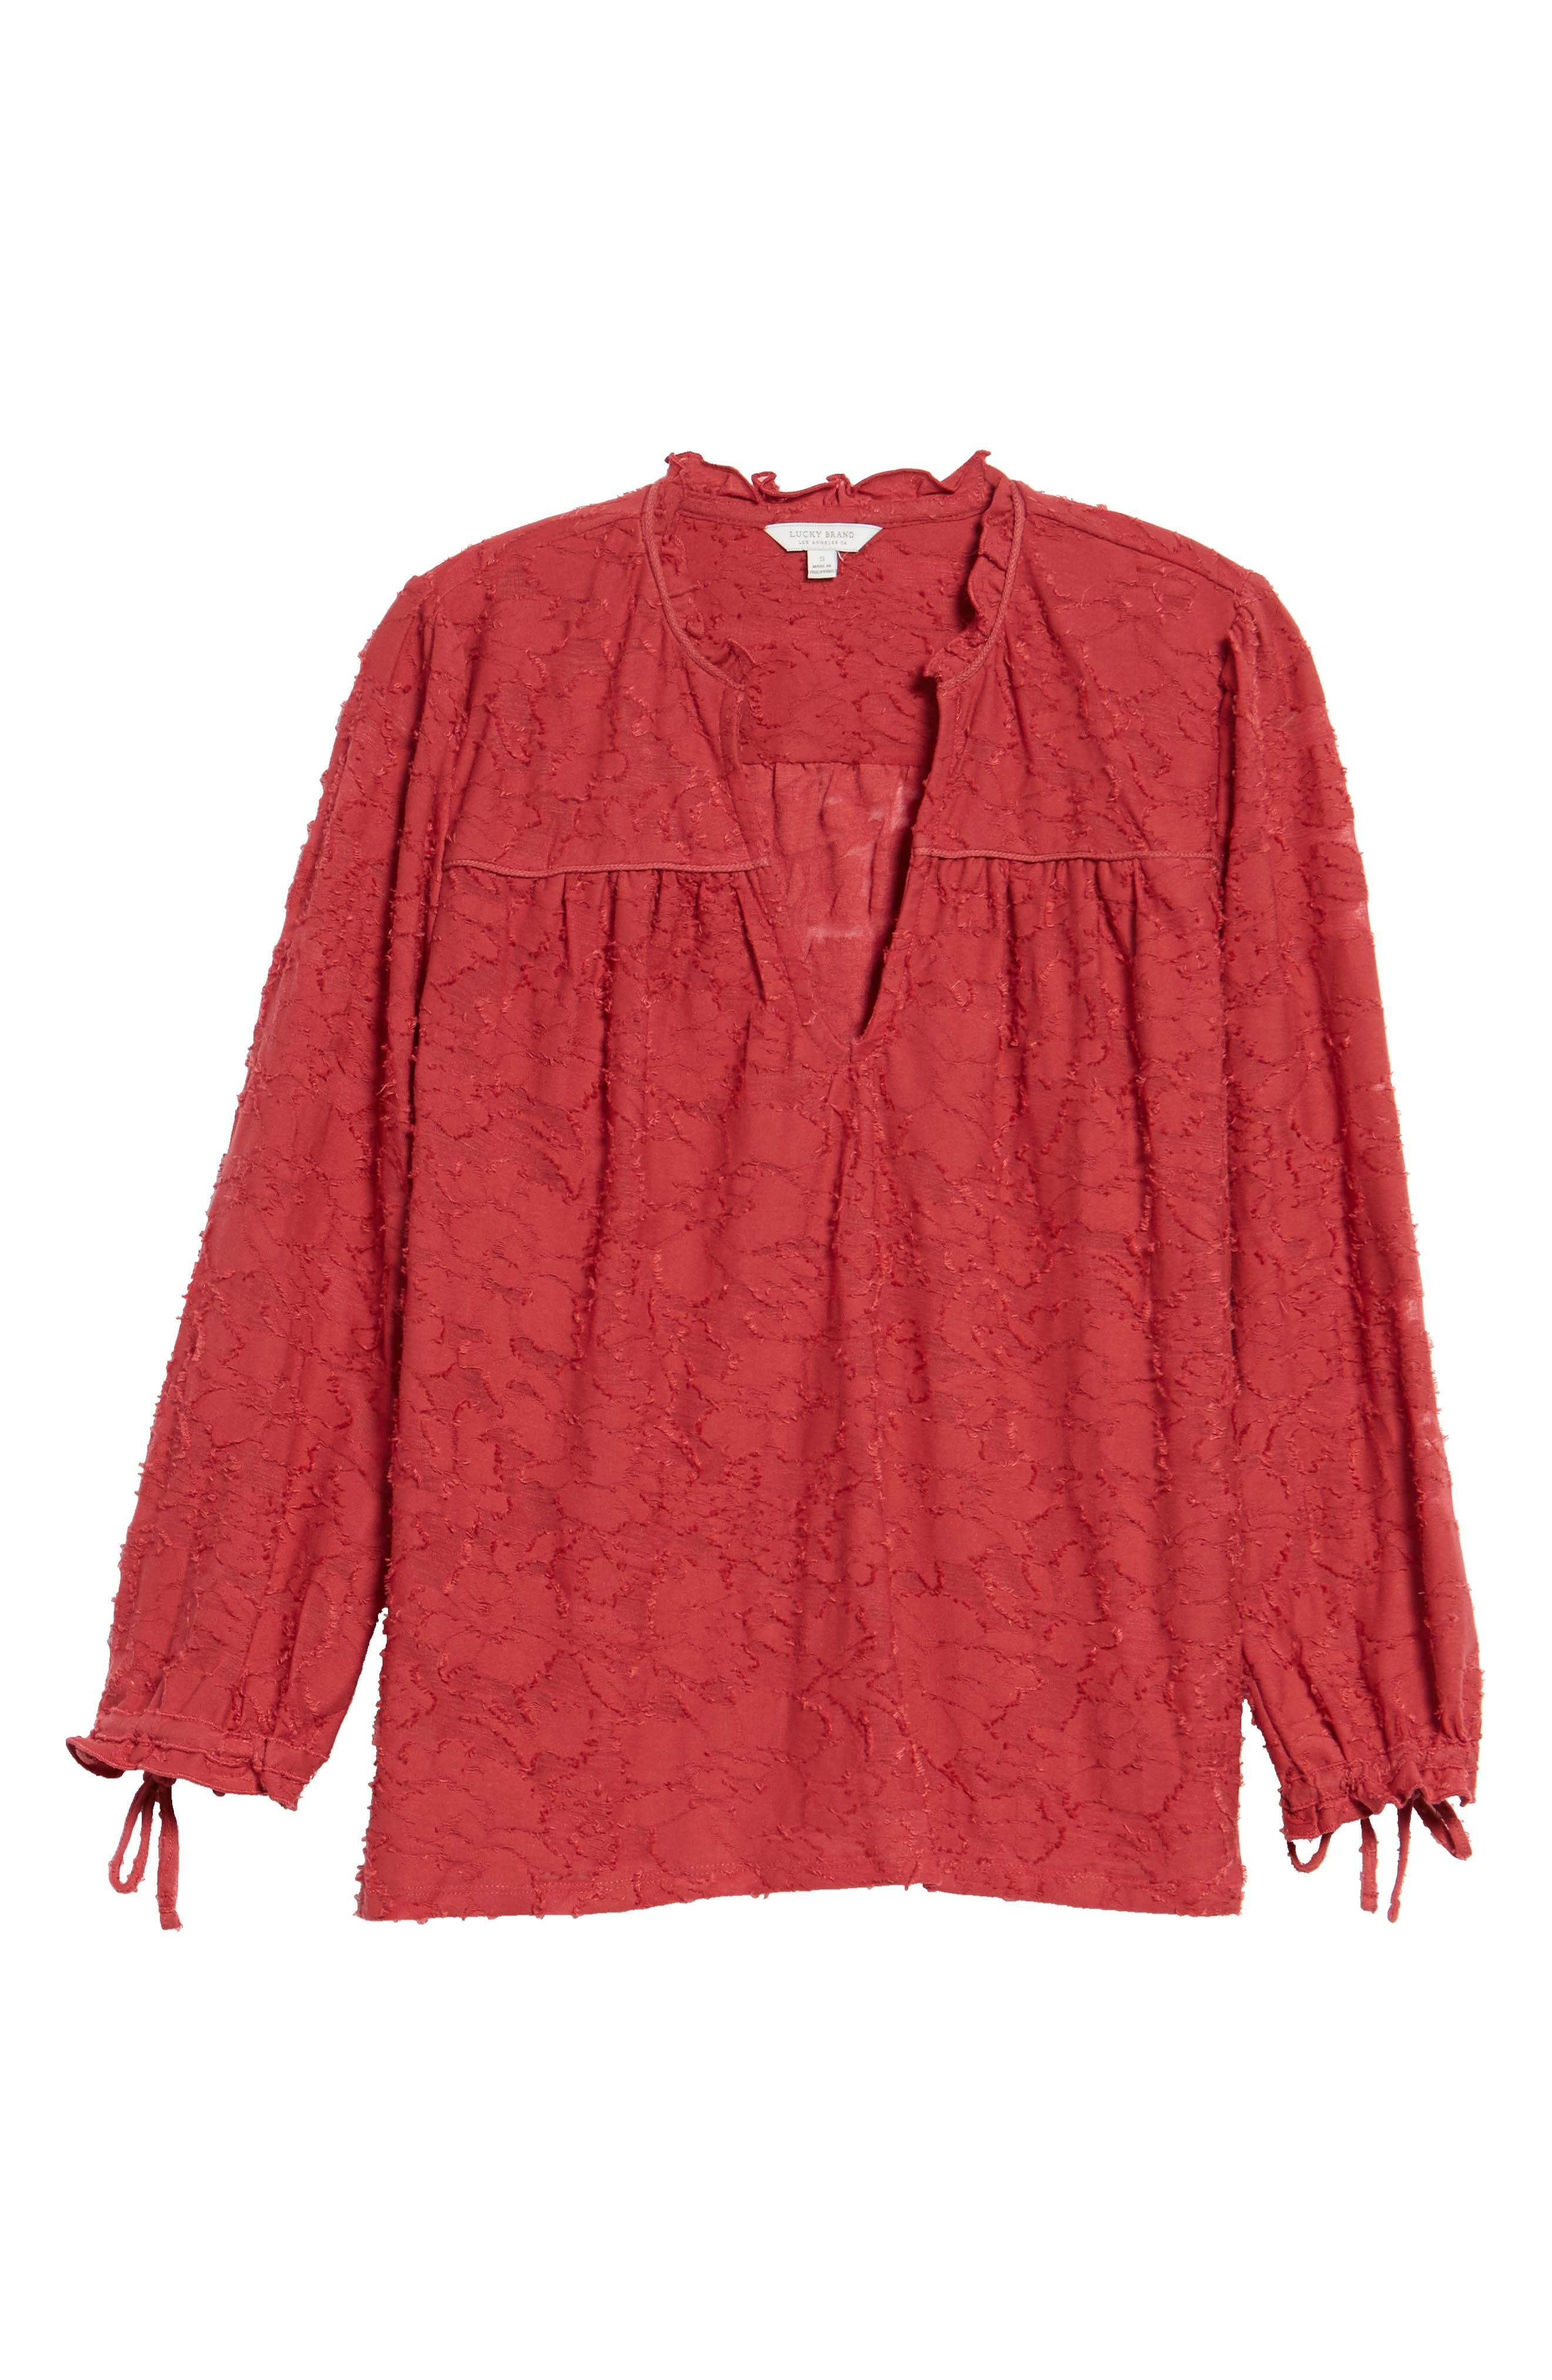 Floral Clipped Jacquard Top,                             Main thumbnail 1, color,                             Earth Red